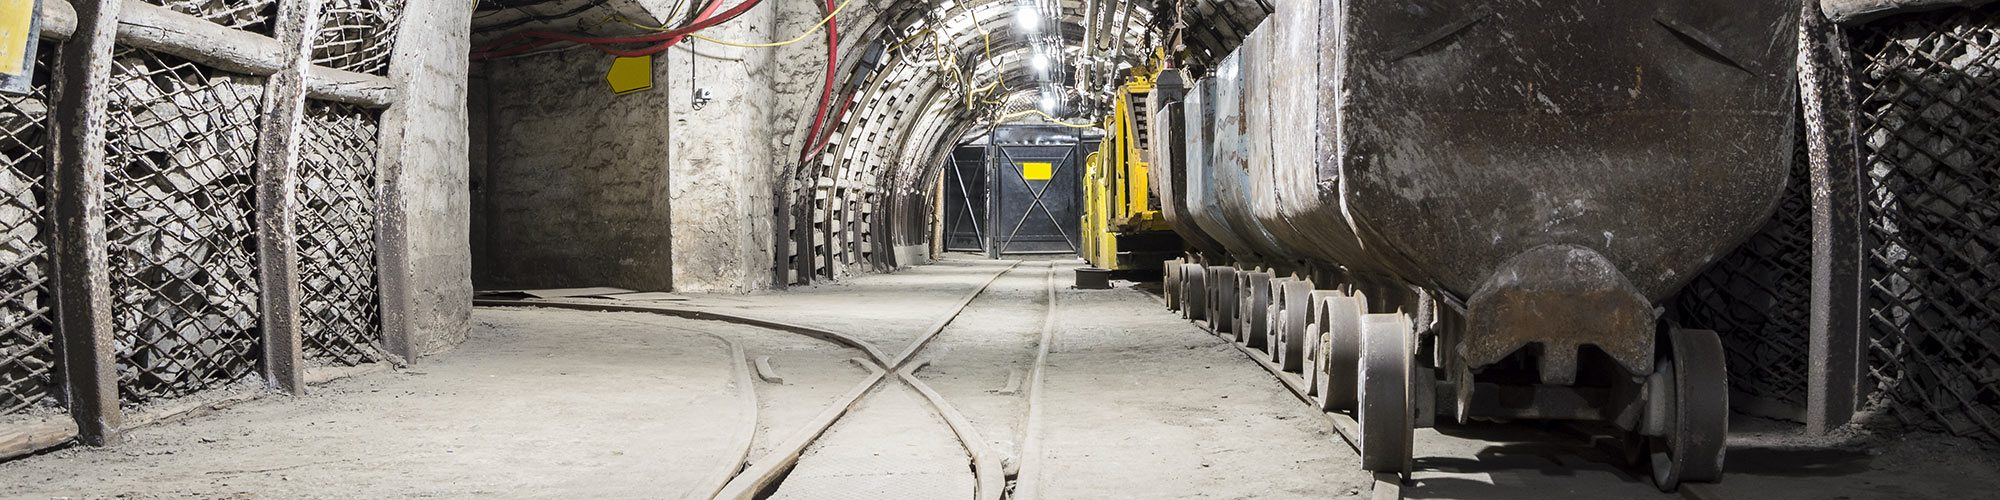 Ensuring electrical safety in underground mining